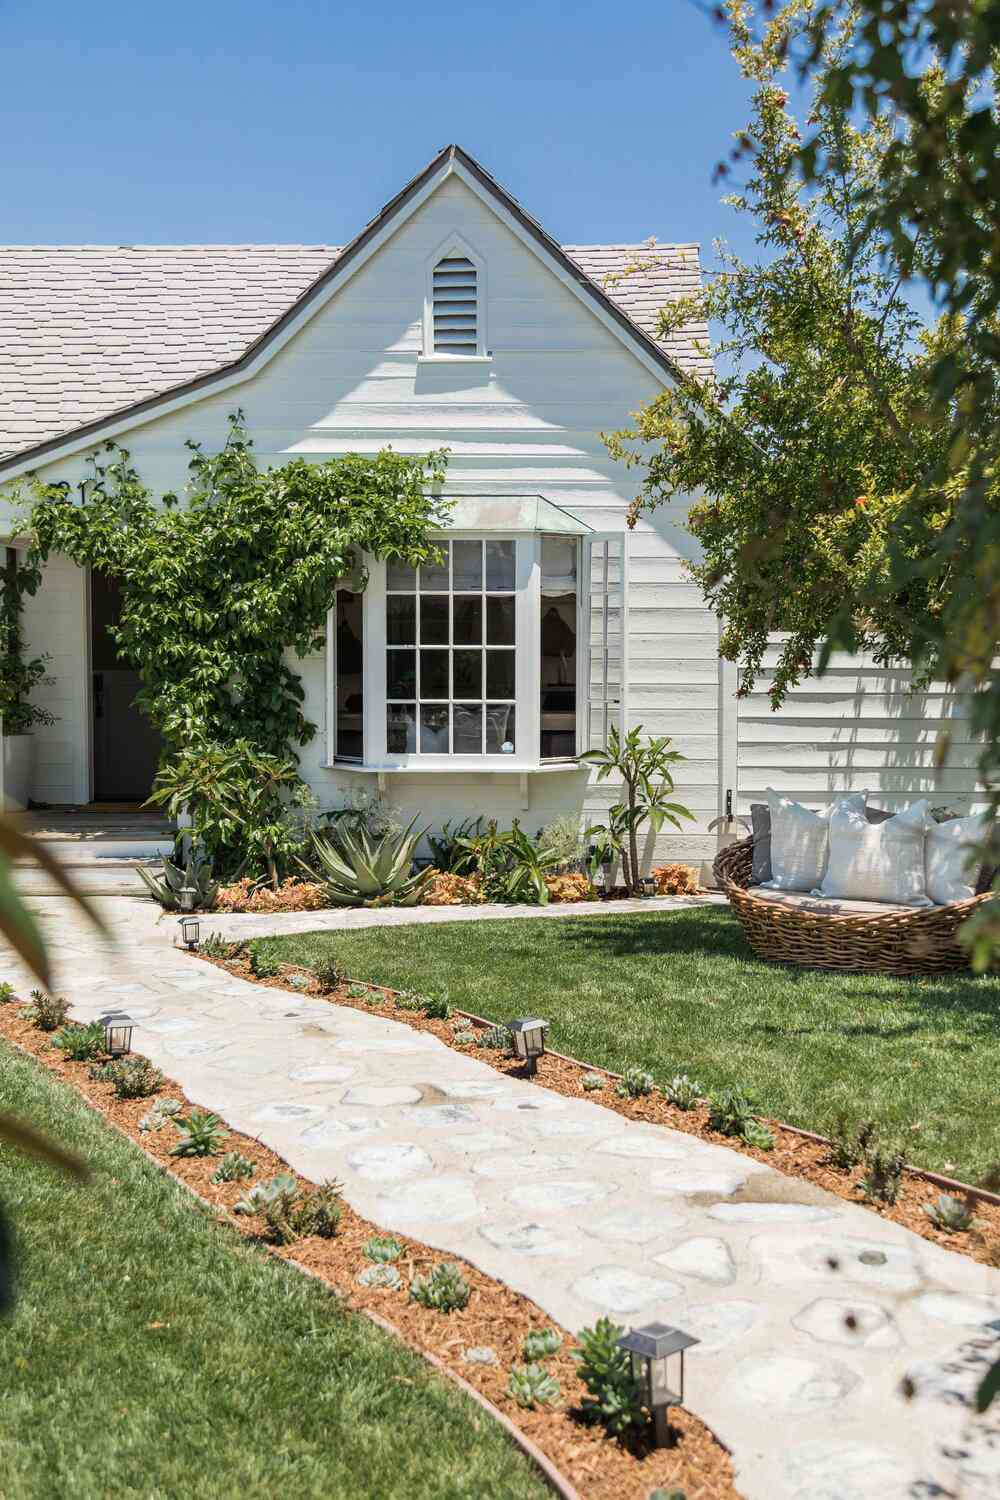 Cottage style home with walkway dotted with succulents.